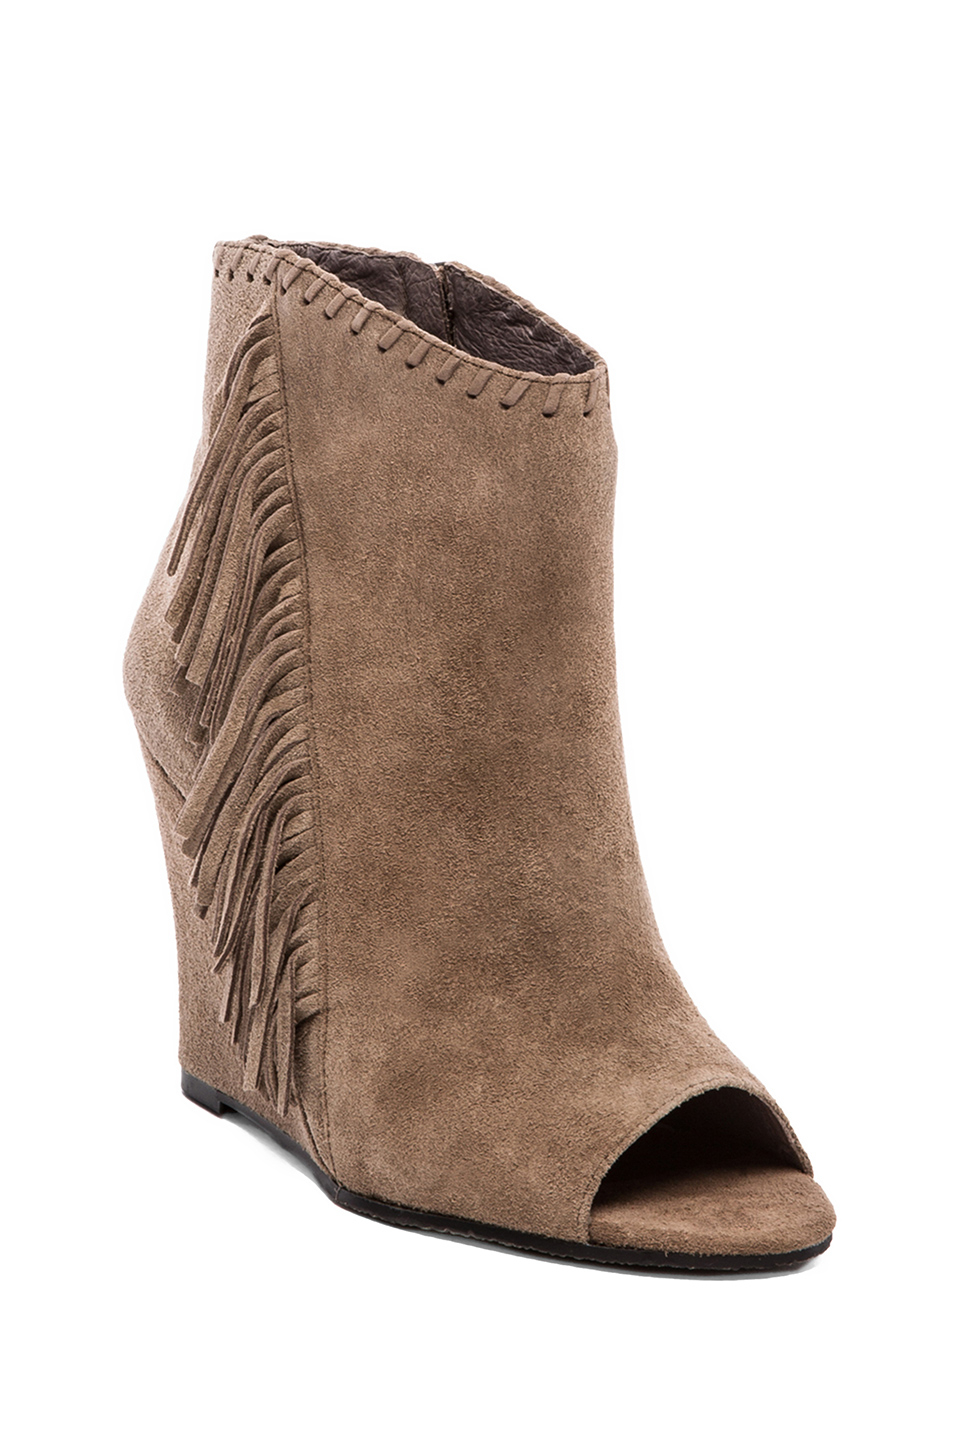 Lyst Vince Camuto Tecca Fringe Bootie In Taupe In Brown